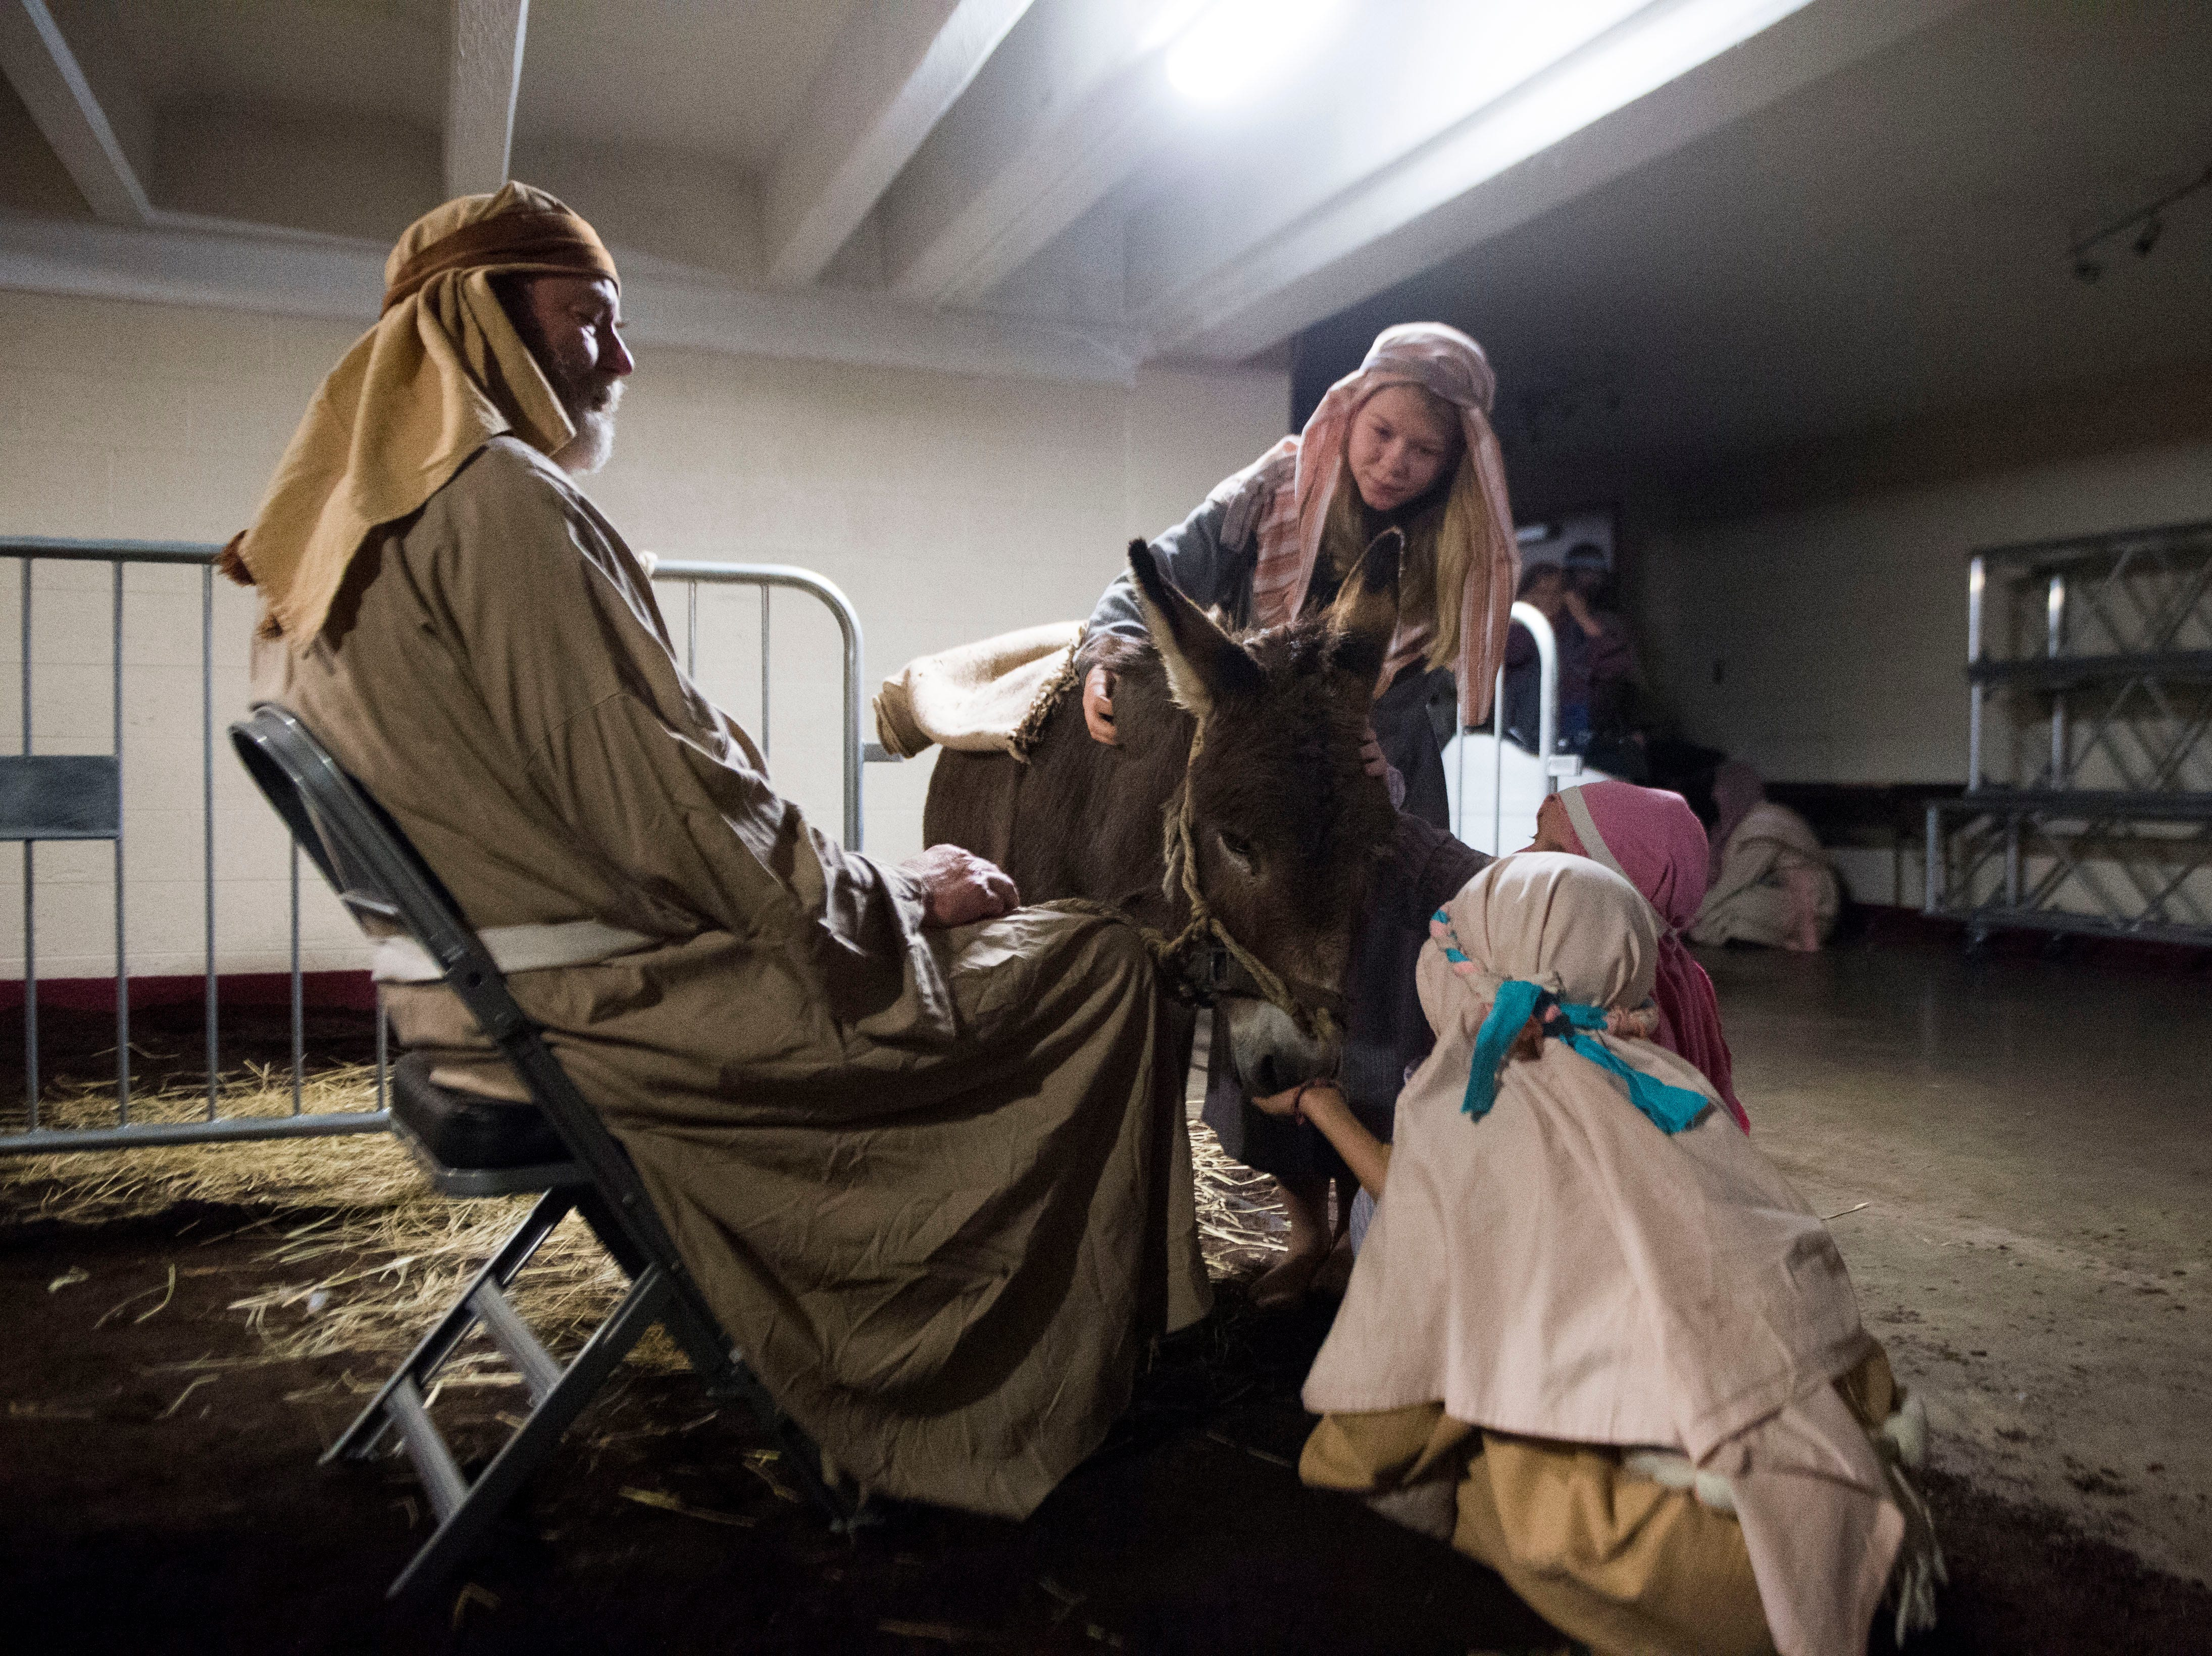 Actors pet an animal backstage at he annual Knoxville Nativity Pageant at the Civic Coliseum Saturday, Dec. 8, 2018.